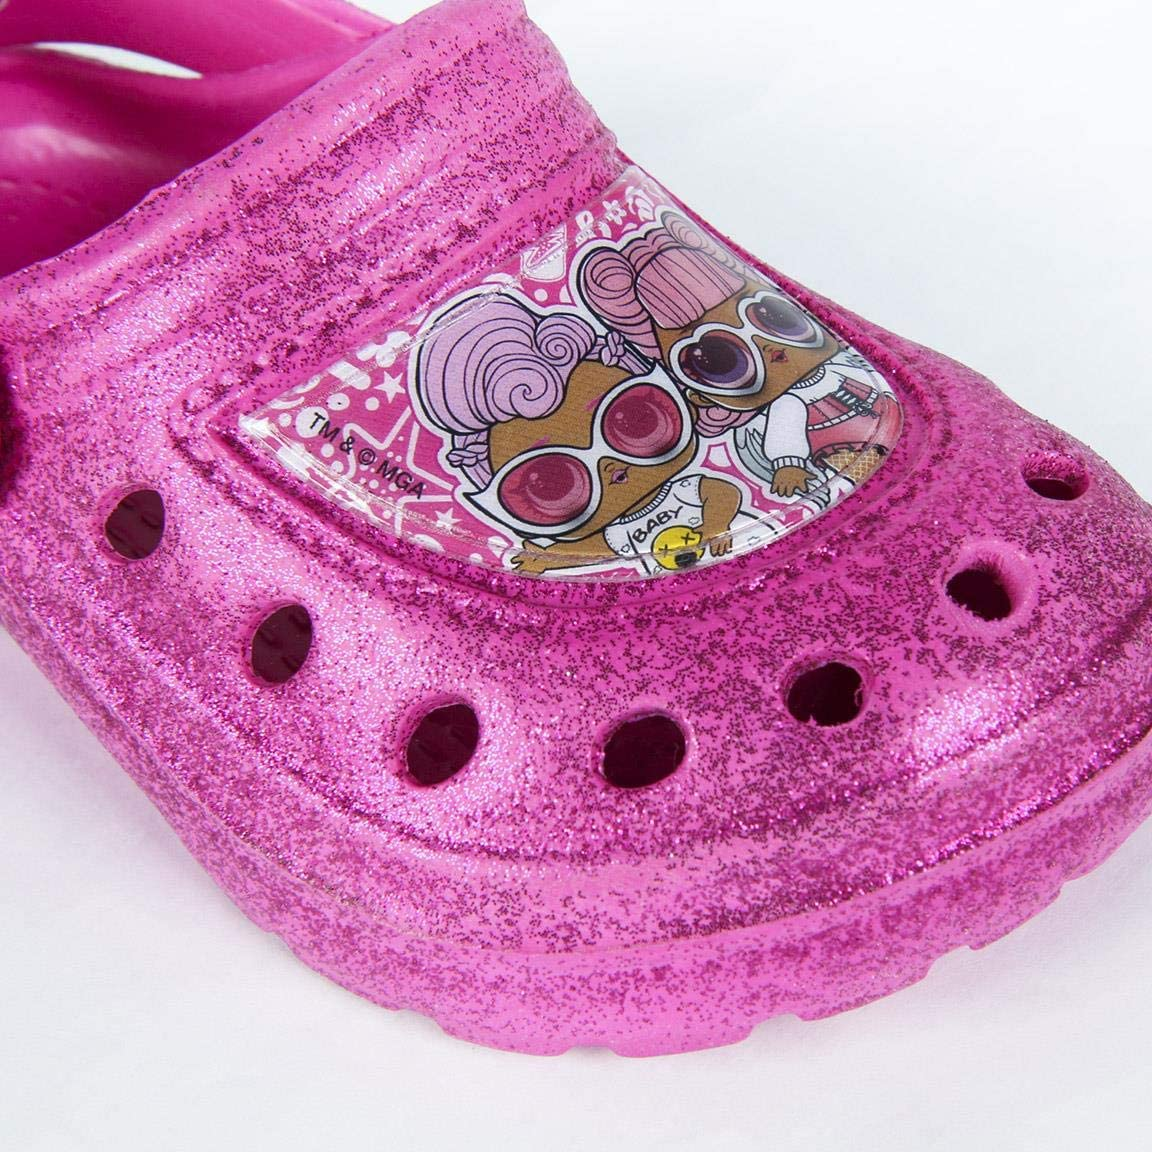 L O L Surprise Sizes UK 6 to 13 Gift for Girls Girls Classic Slip On Clogs Crocs Lightweight Garden Pool Beach Holiday Sandals Incredible Summer Shoes Beautiful Glitter Design